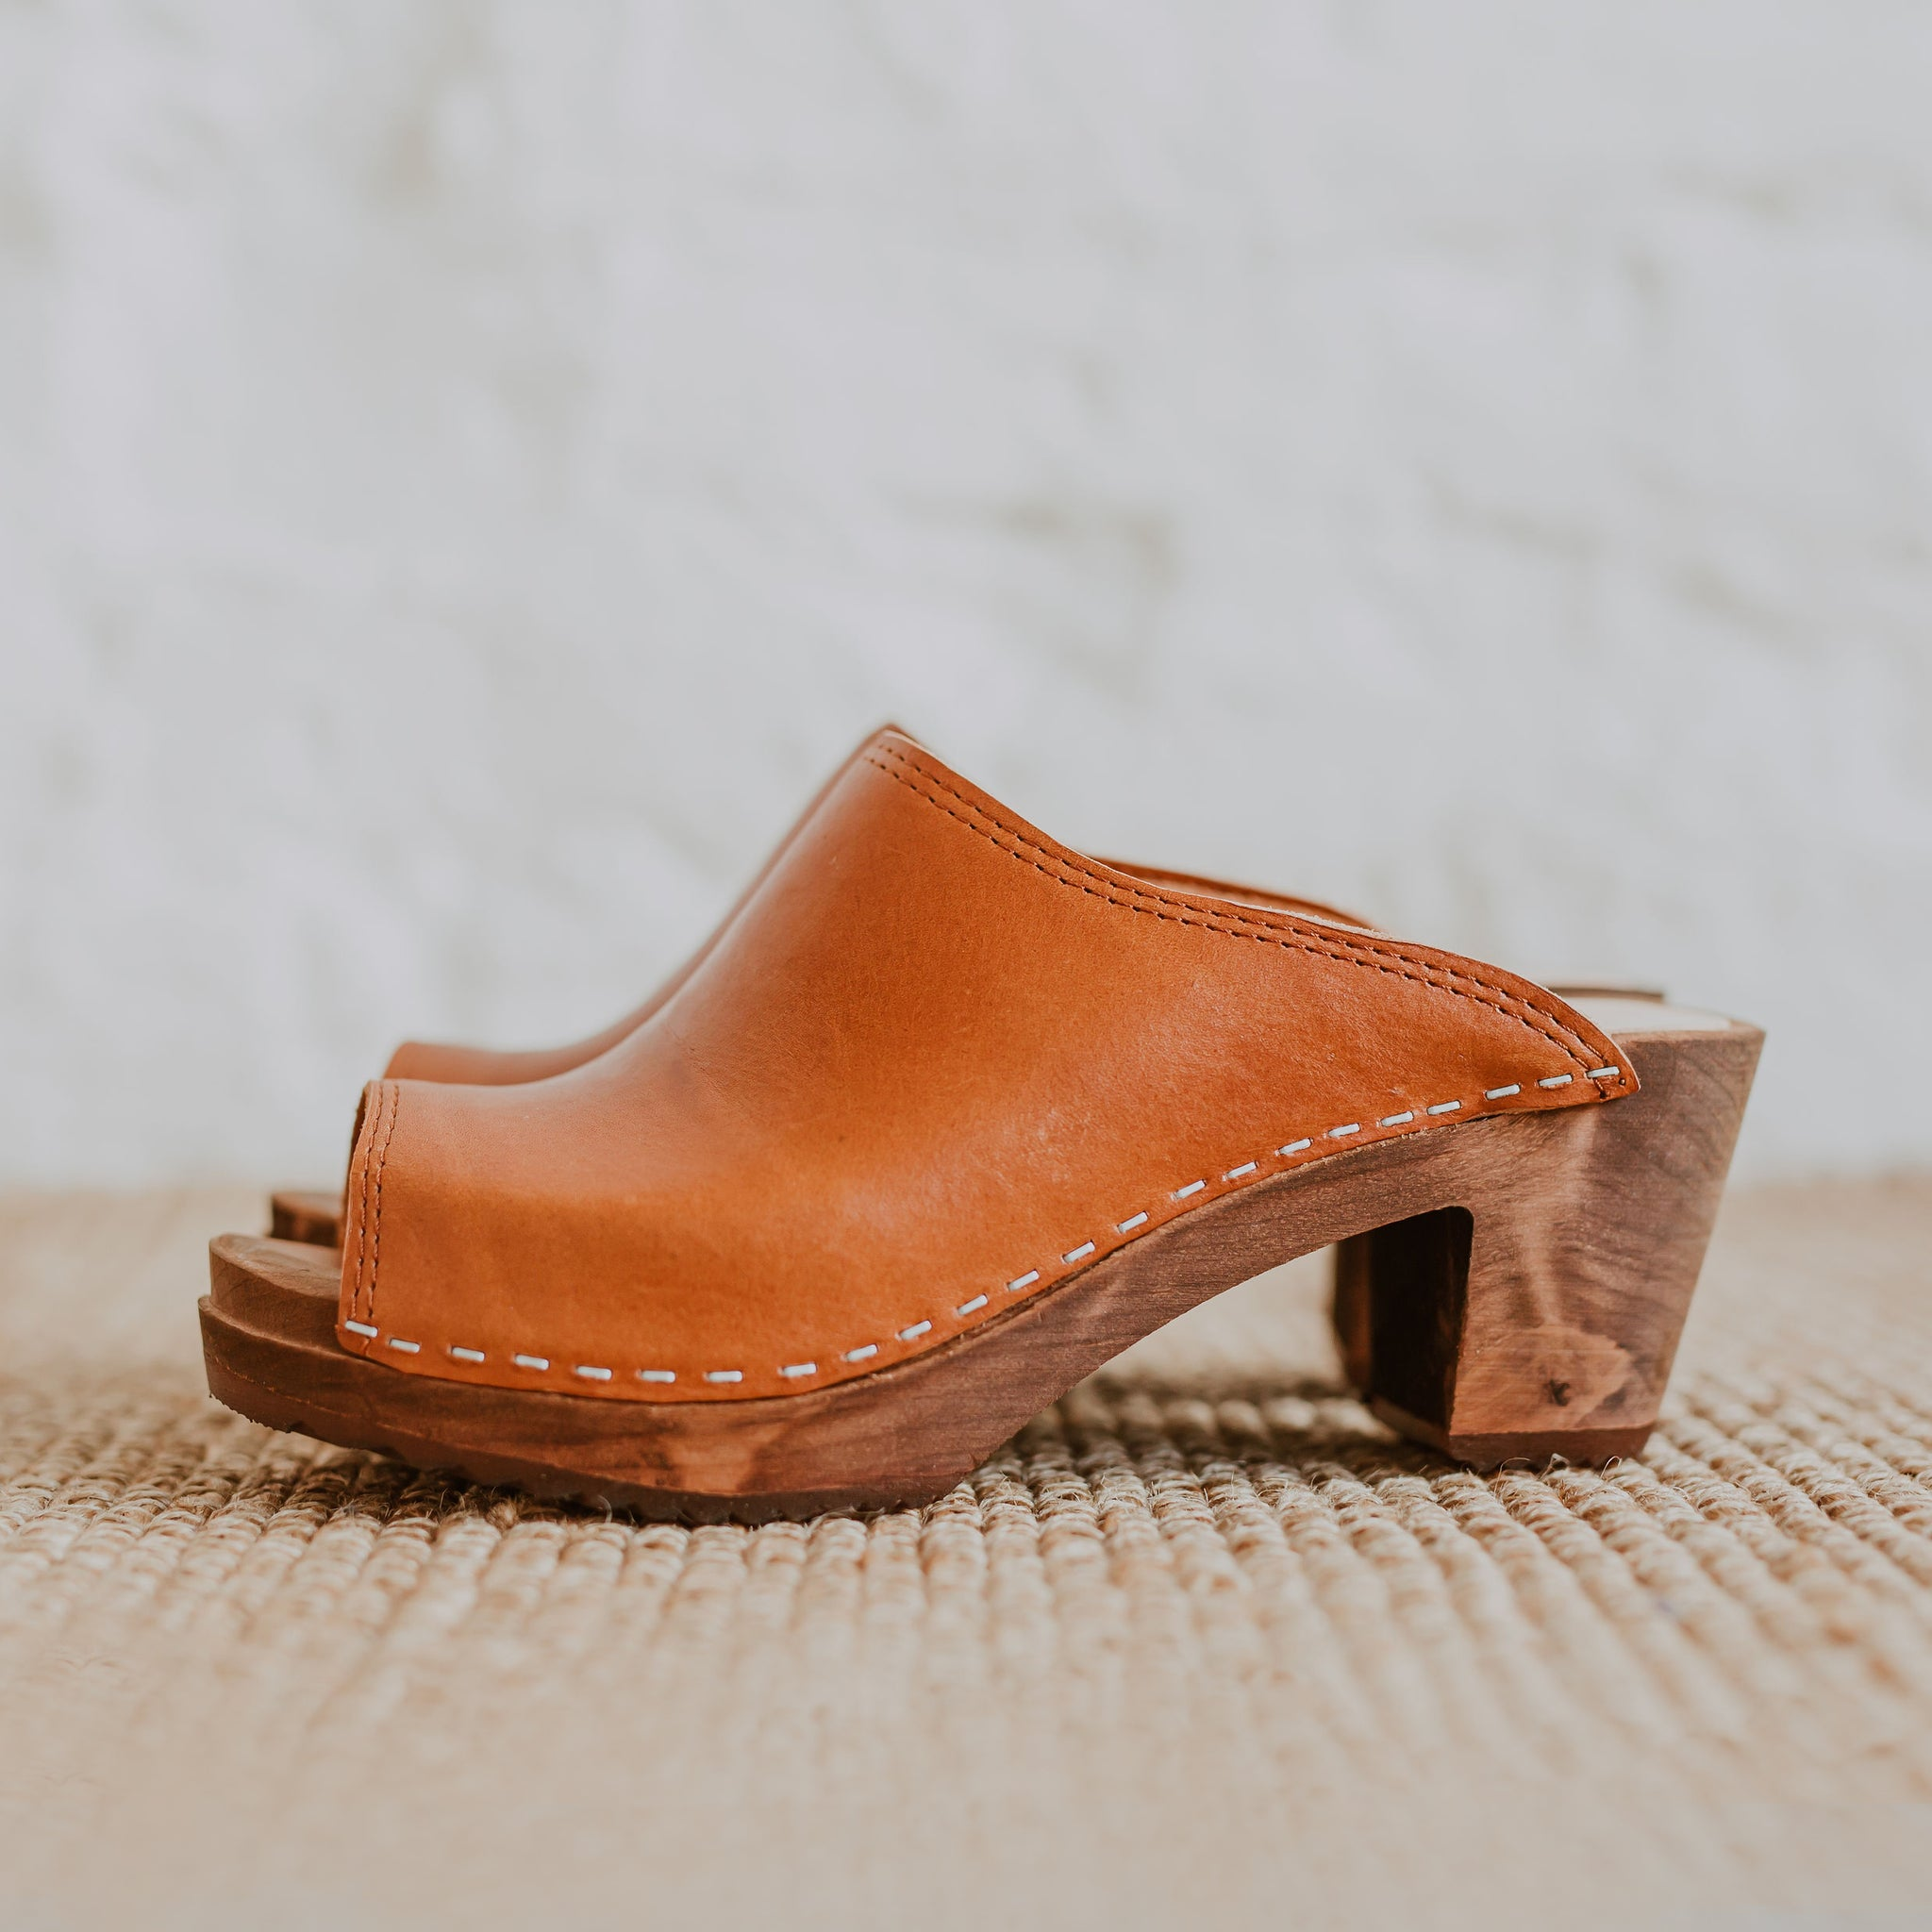 Tan brown cumin leather peep toe classic style mid heel Swedish women's clog